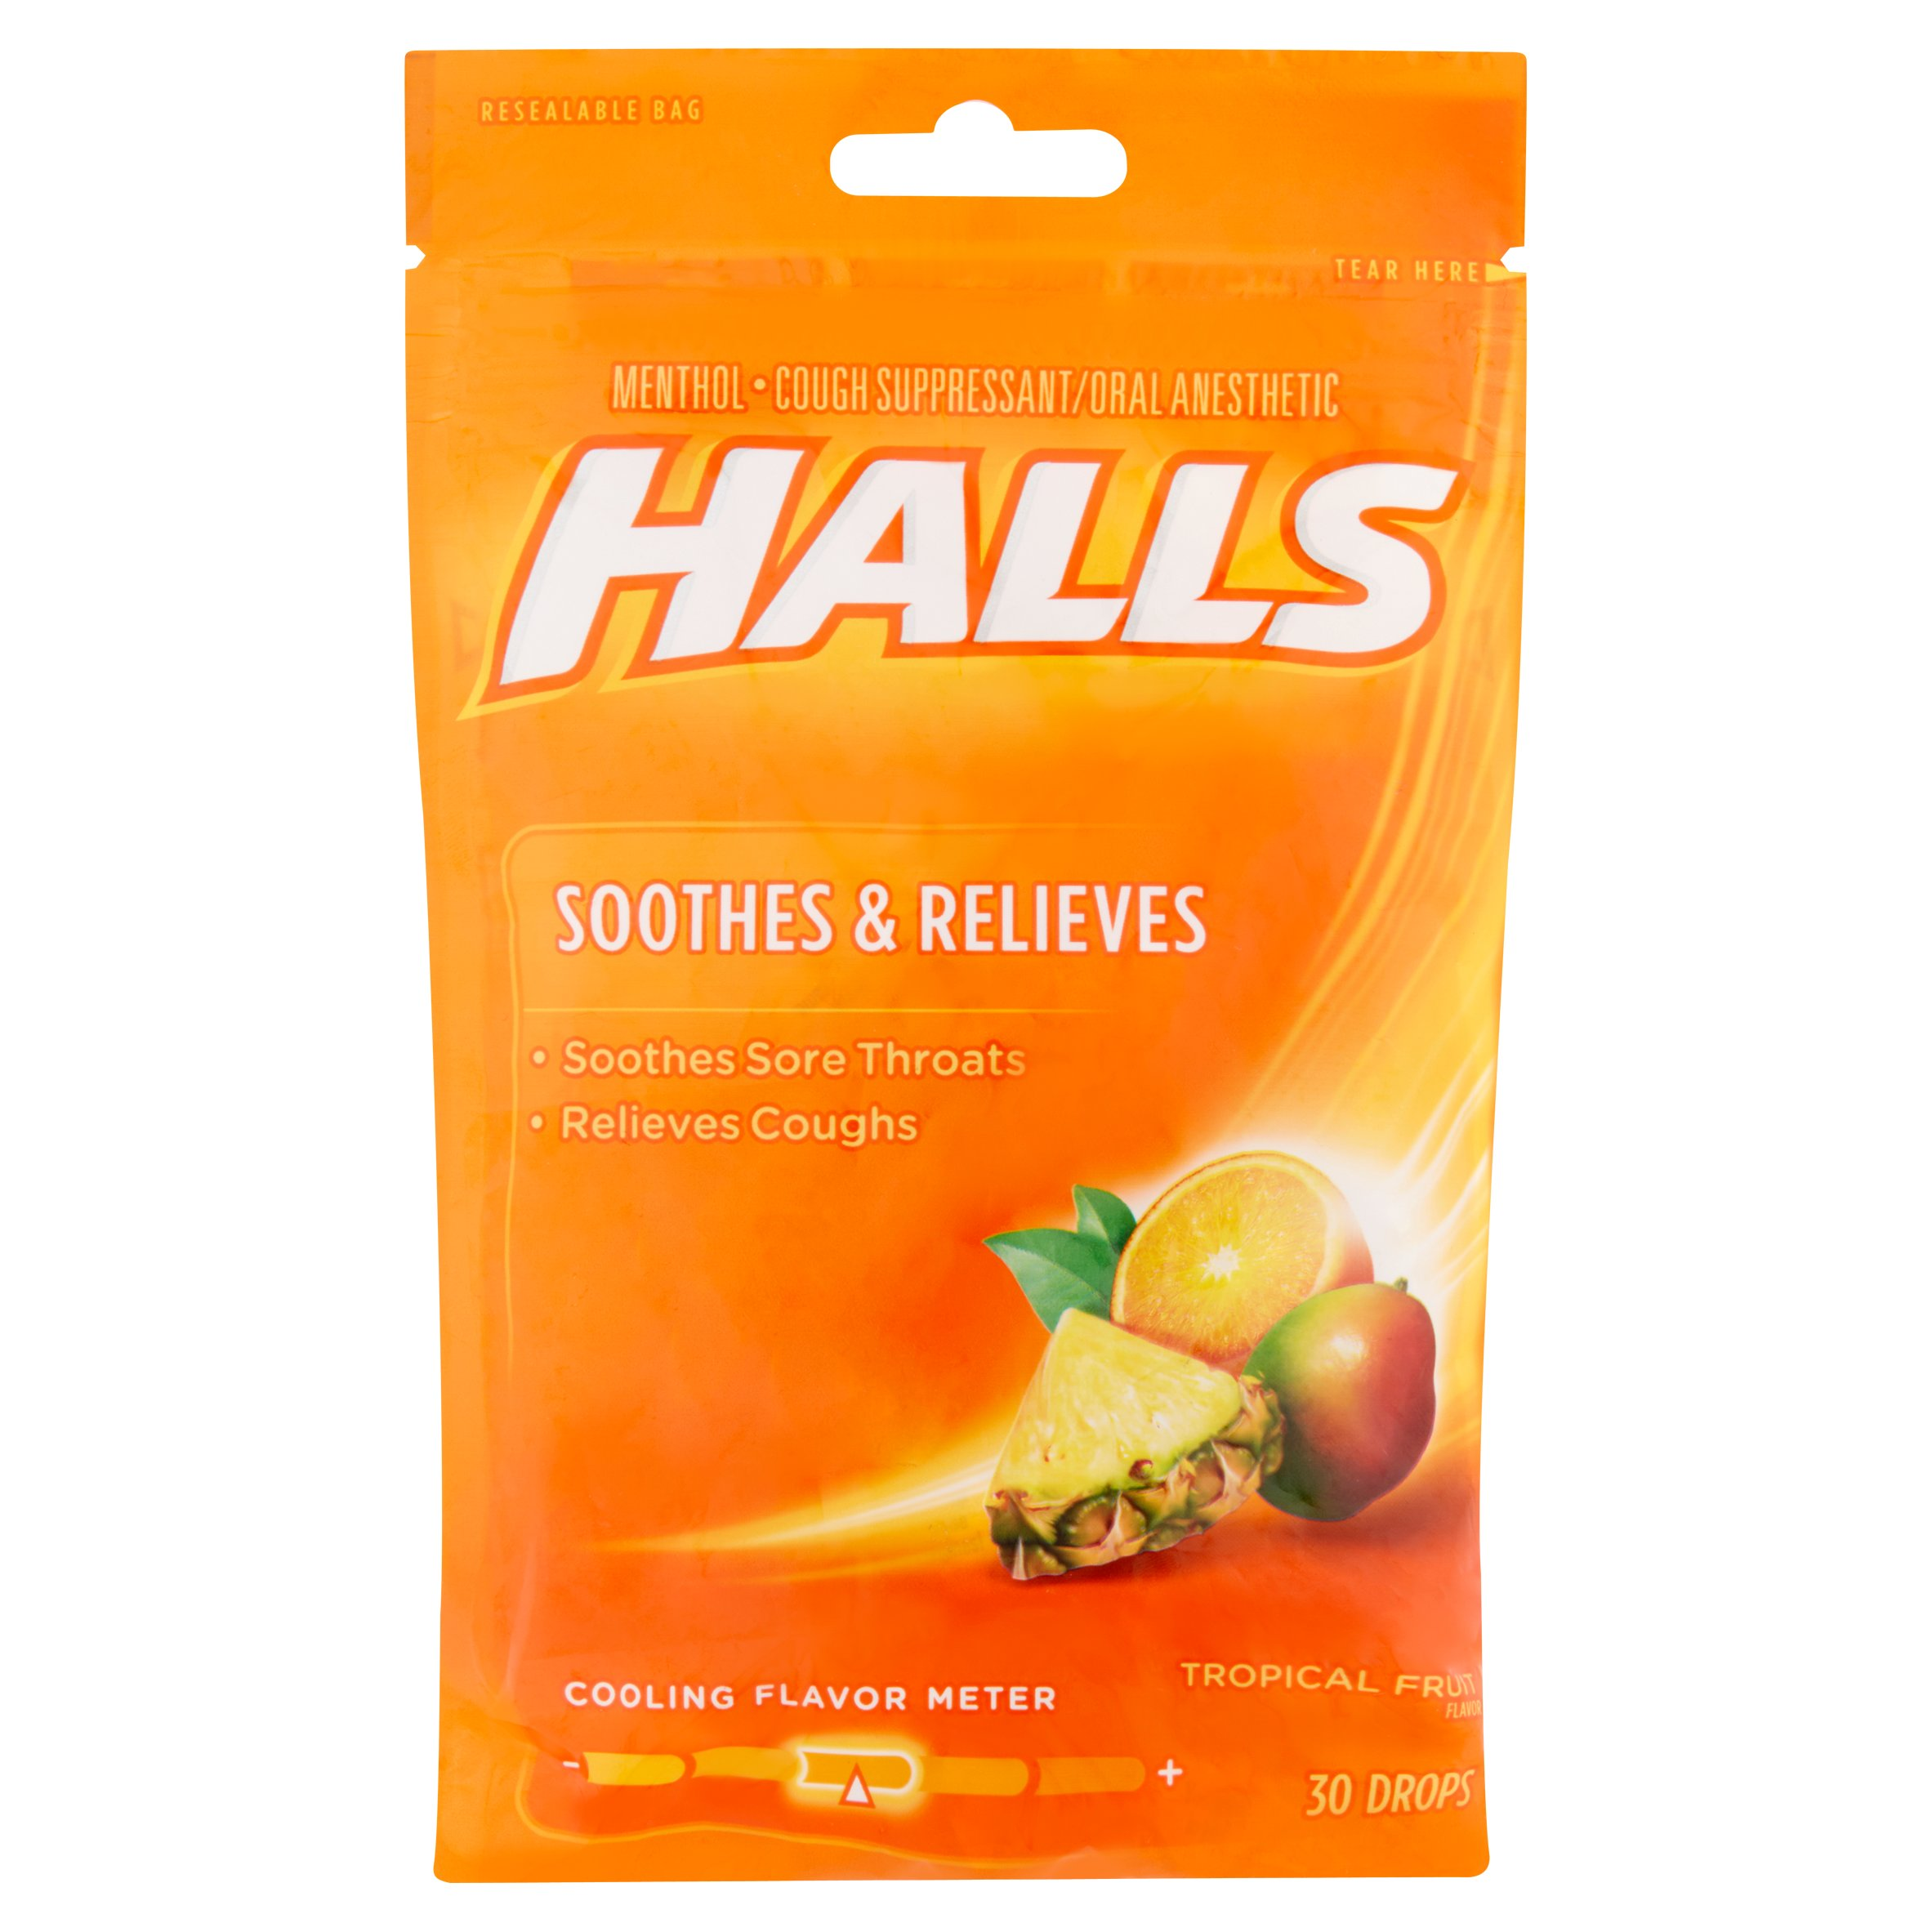 Halls Tropical Fruit Flavor Menthol Cough Suppressant/Oral Anesthetic Drops, 30 count